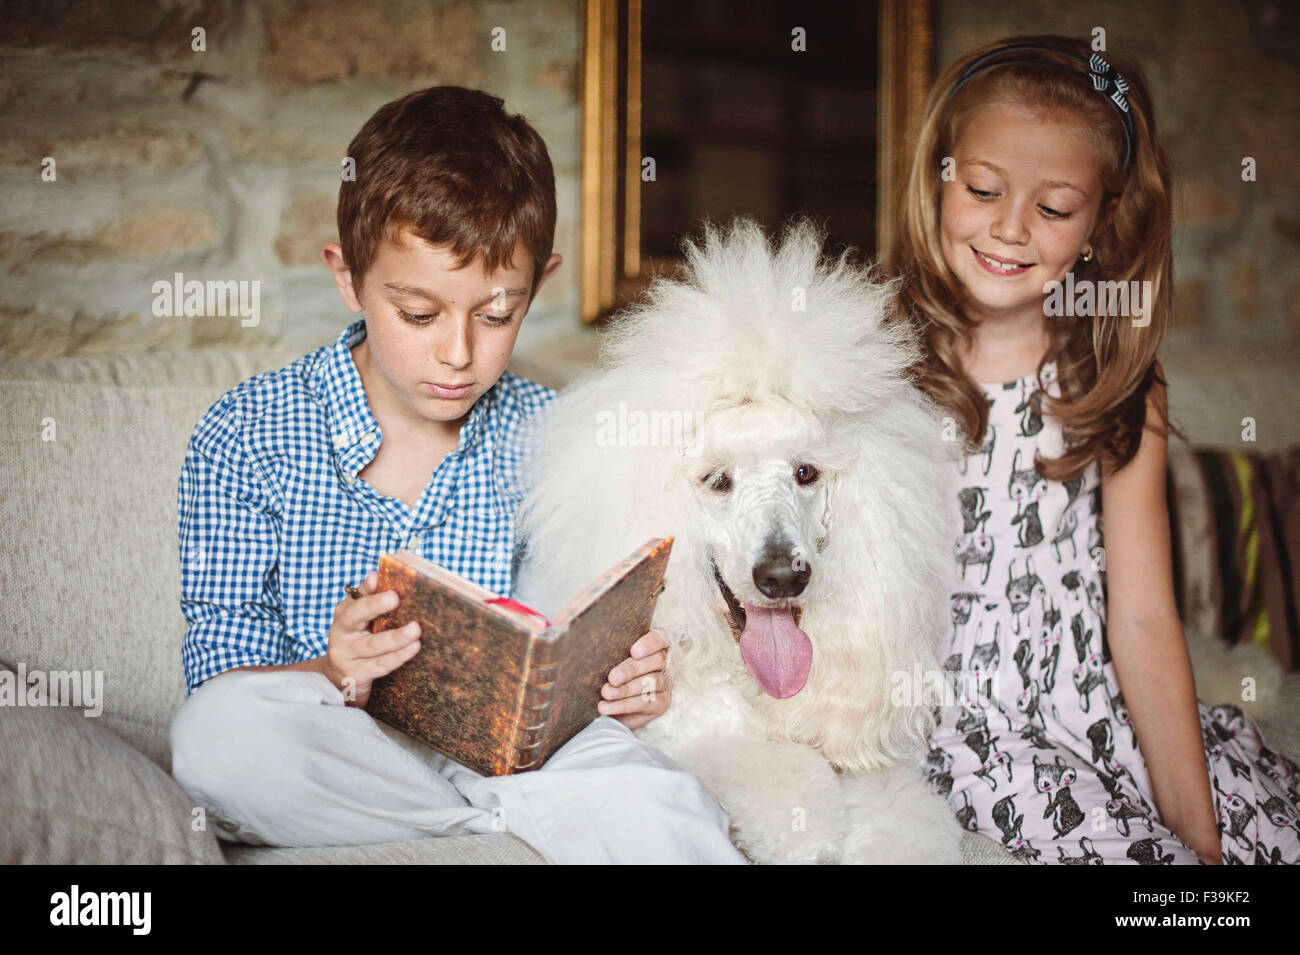 Boy and girl reading a book with their pet poodle dog - Stock Image